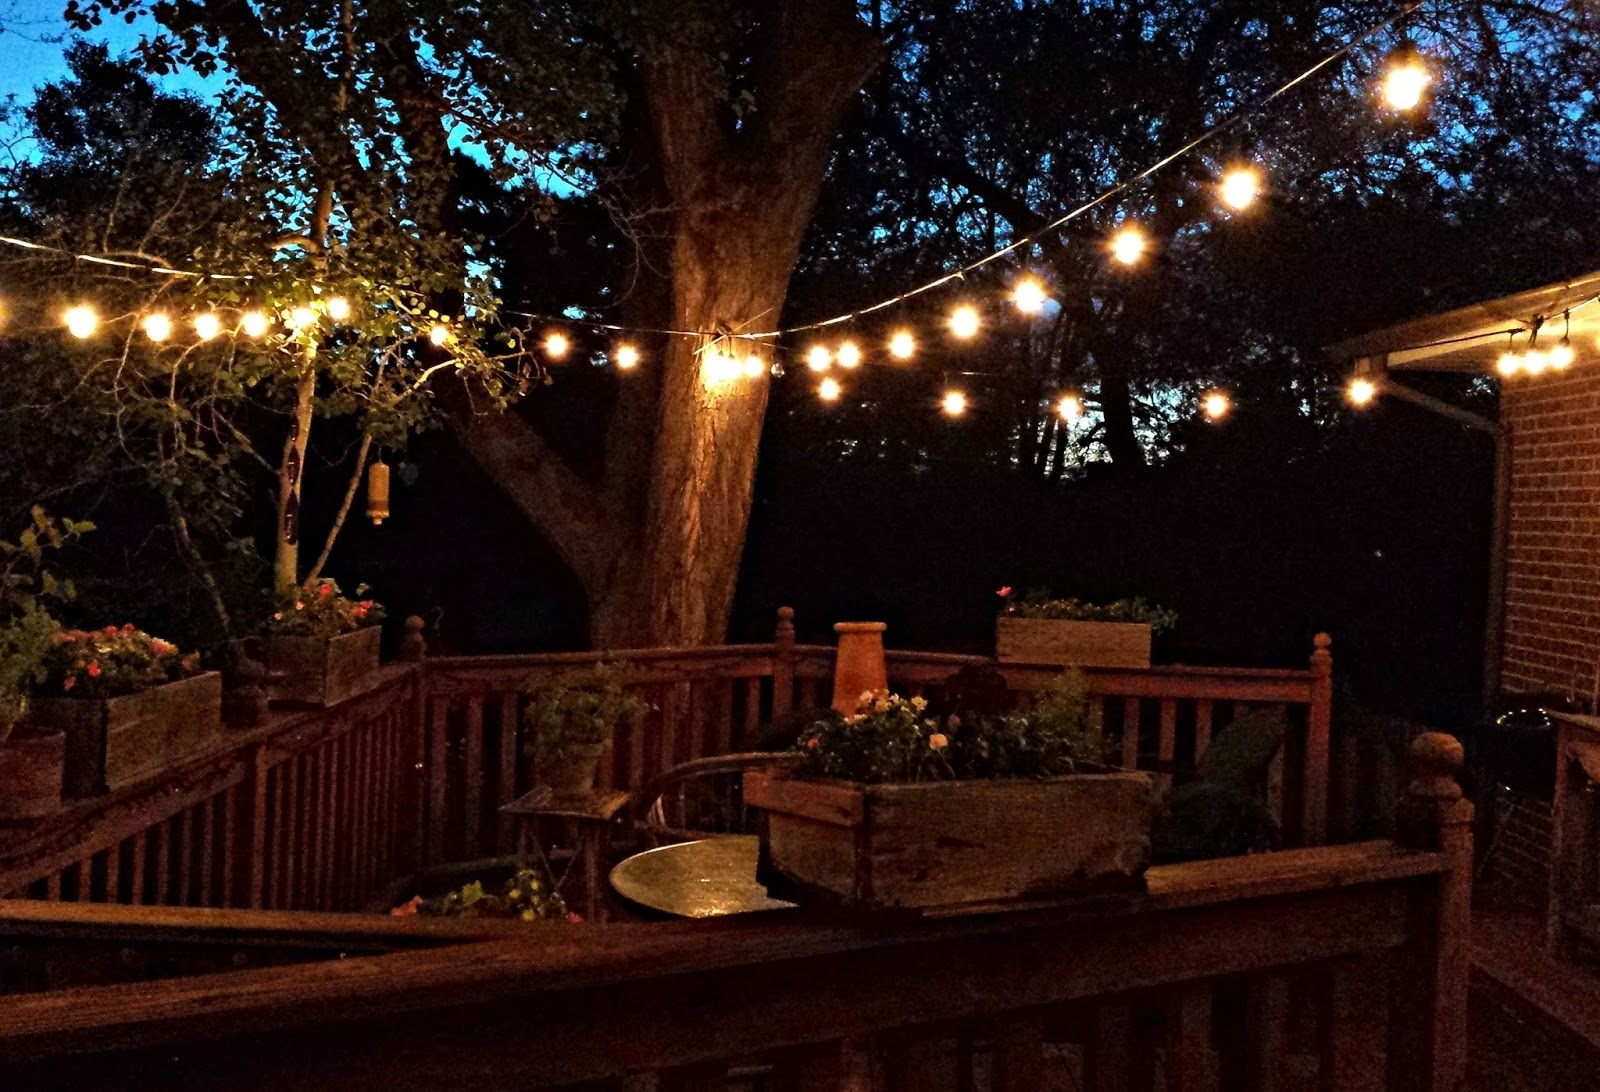 Adorable Foot G50Atio Globe String Lights With Inch Led Solar Target In Outdoor Hanging Lights At Target (View 2 of 15)